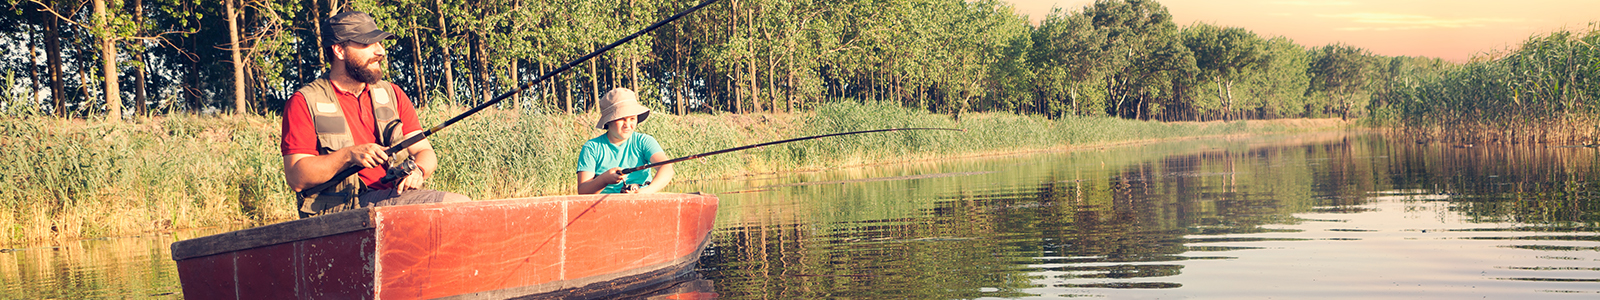 Expert Advice - Fishing